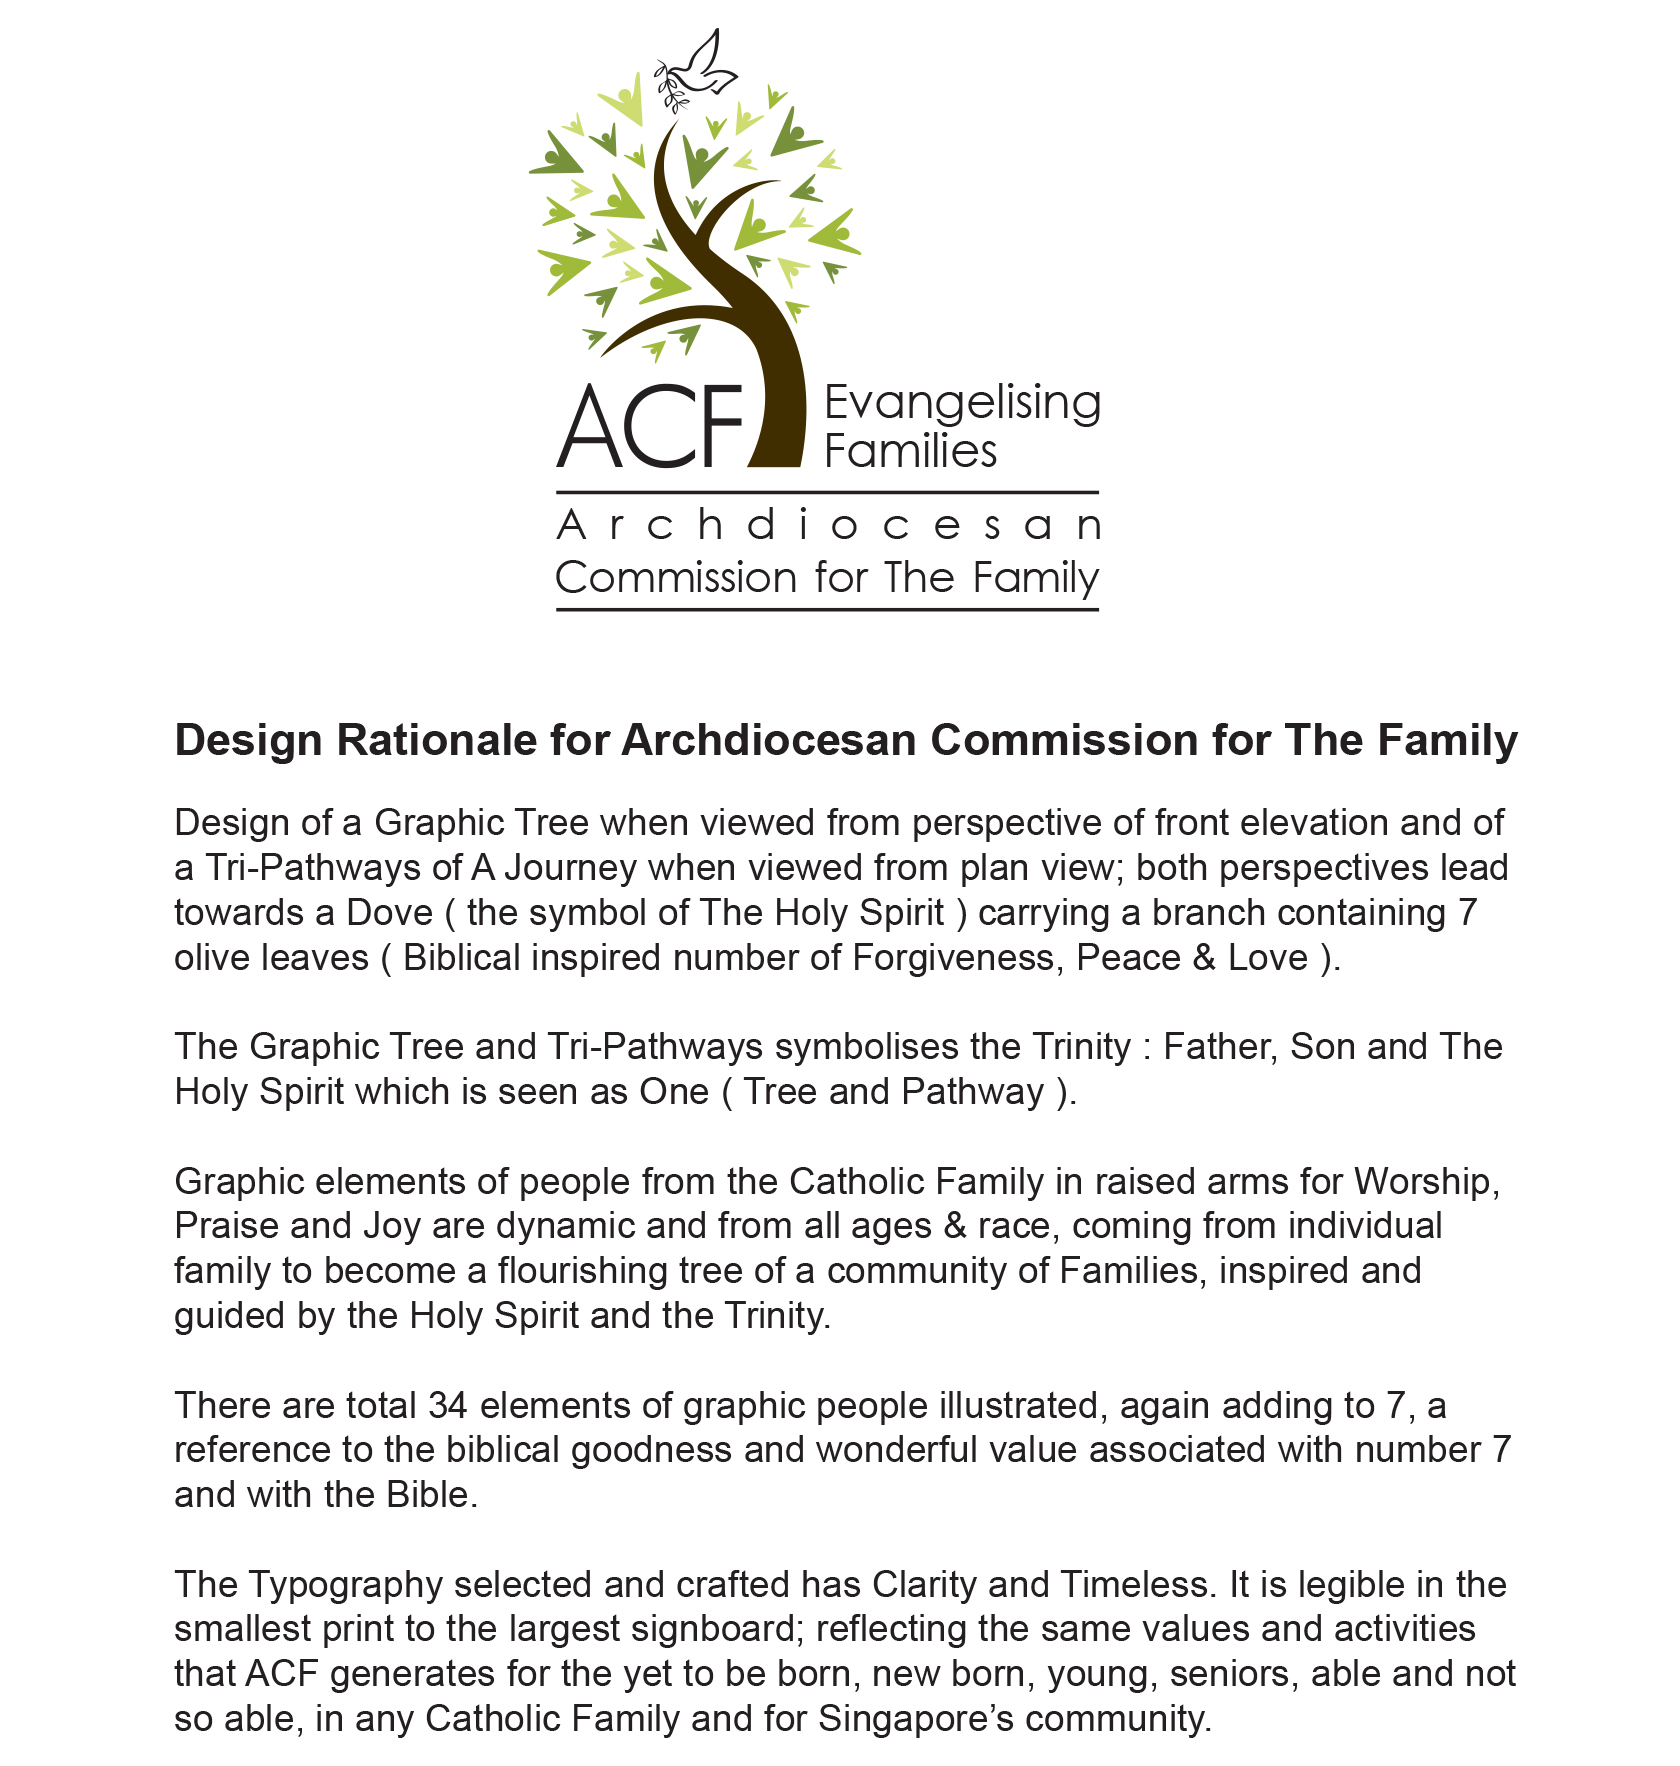 Archdiocesan Commission for The Family - Env